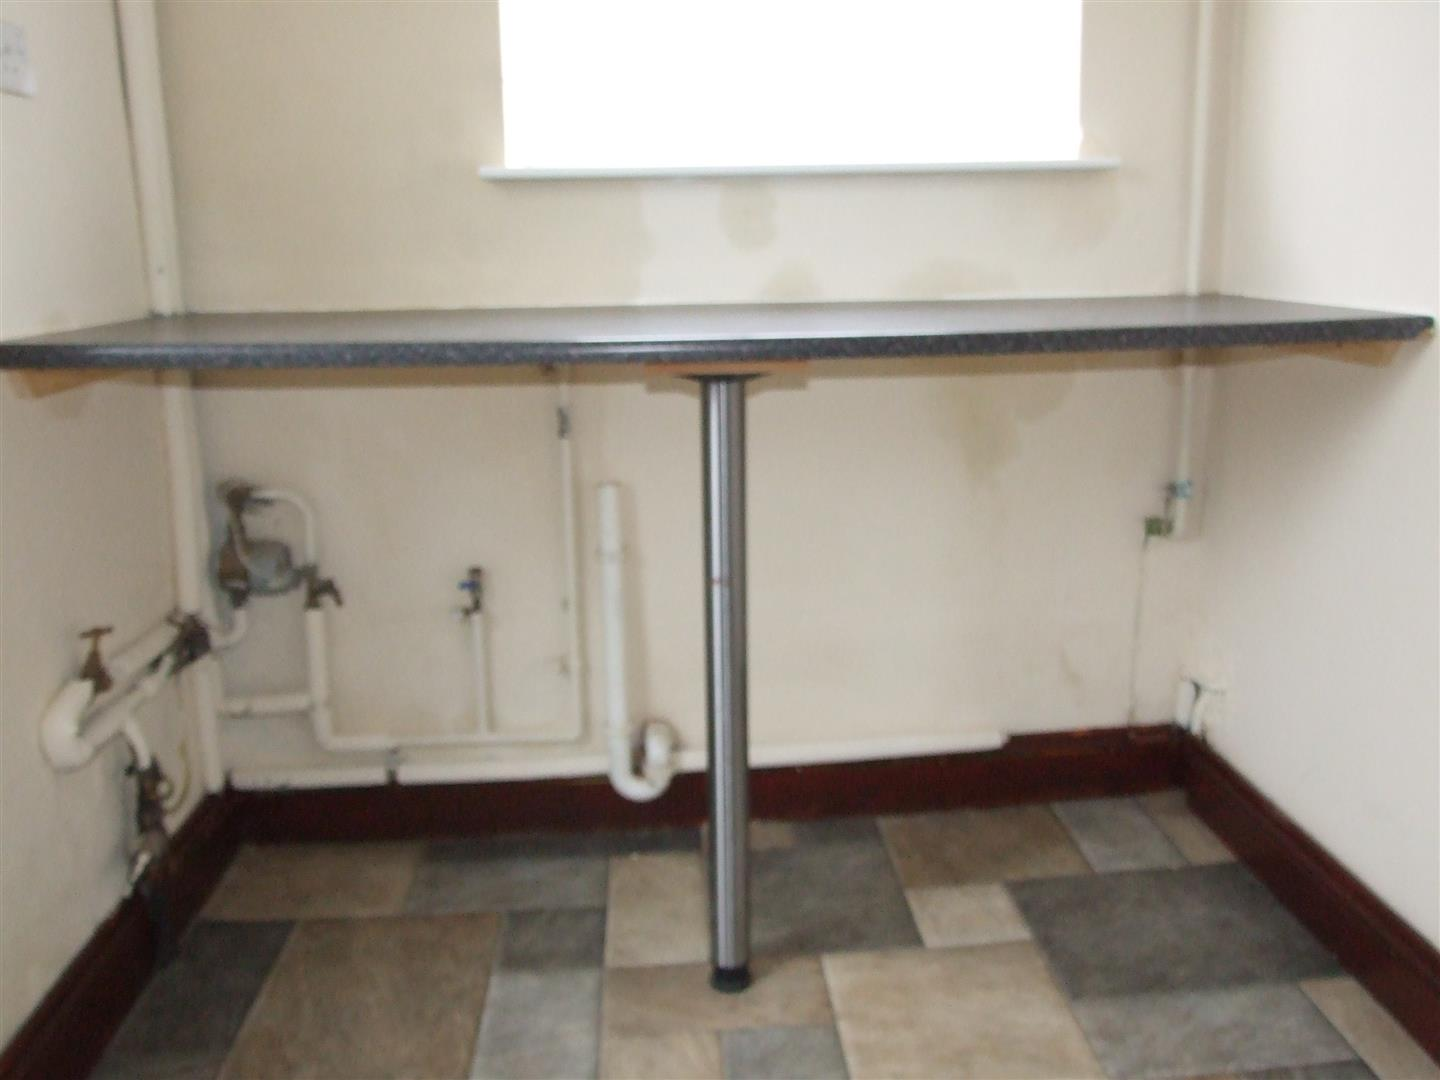 2 bed flat to rent in Sutton Bridge Spalding, PE12 9SF  - Property Image 12